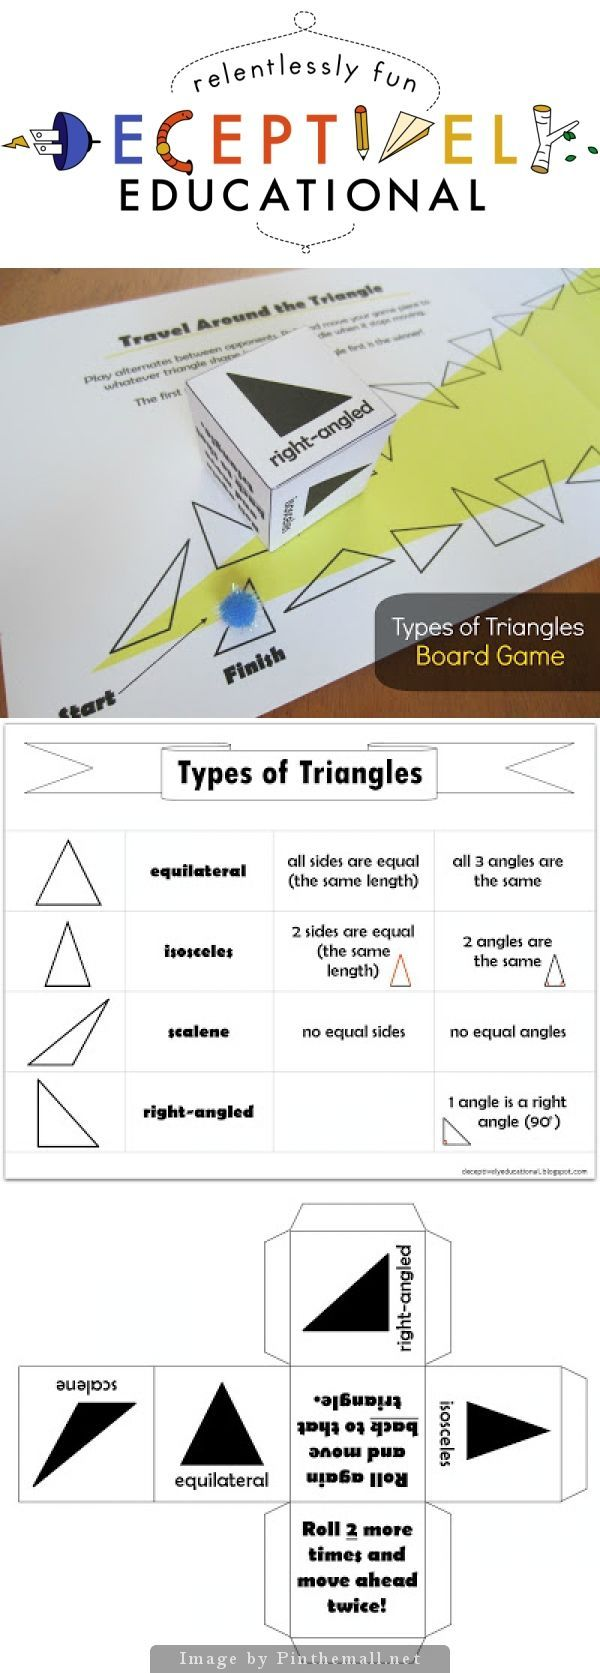 free - types of Triangles Board Game - a board game to help students learn the four types of triangles: ~Scalene ~Right-angled ~Equilateral ~Isosceles | Includes a sheet explaining the differences between the four types of triangles |